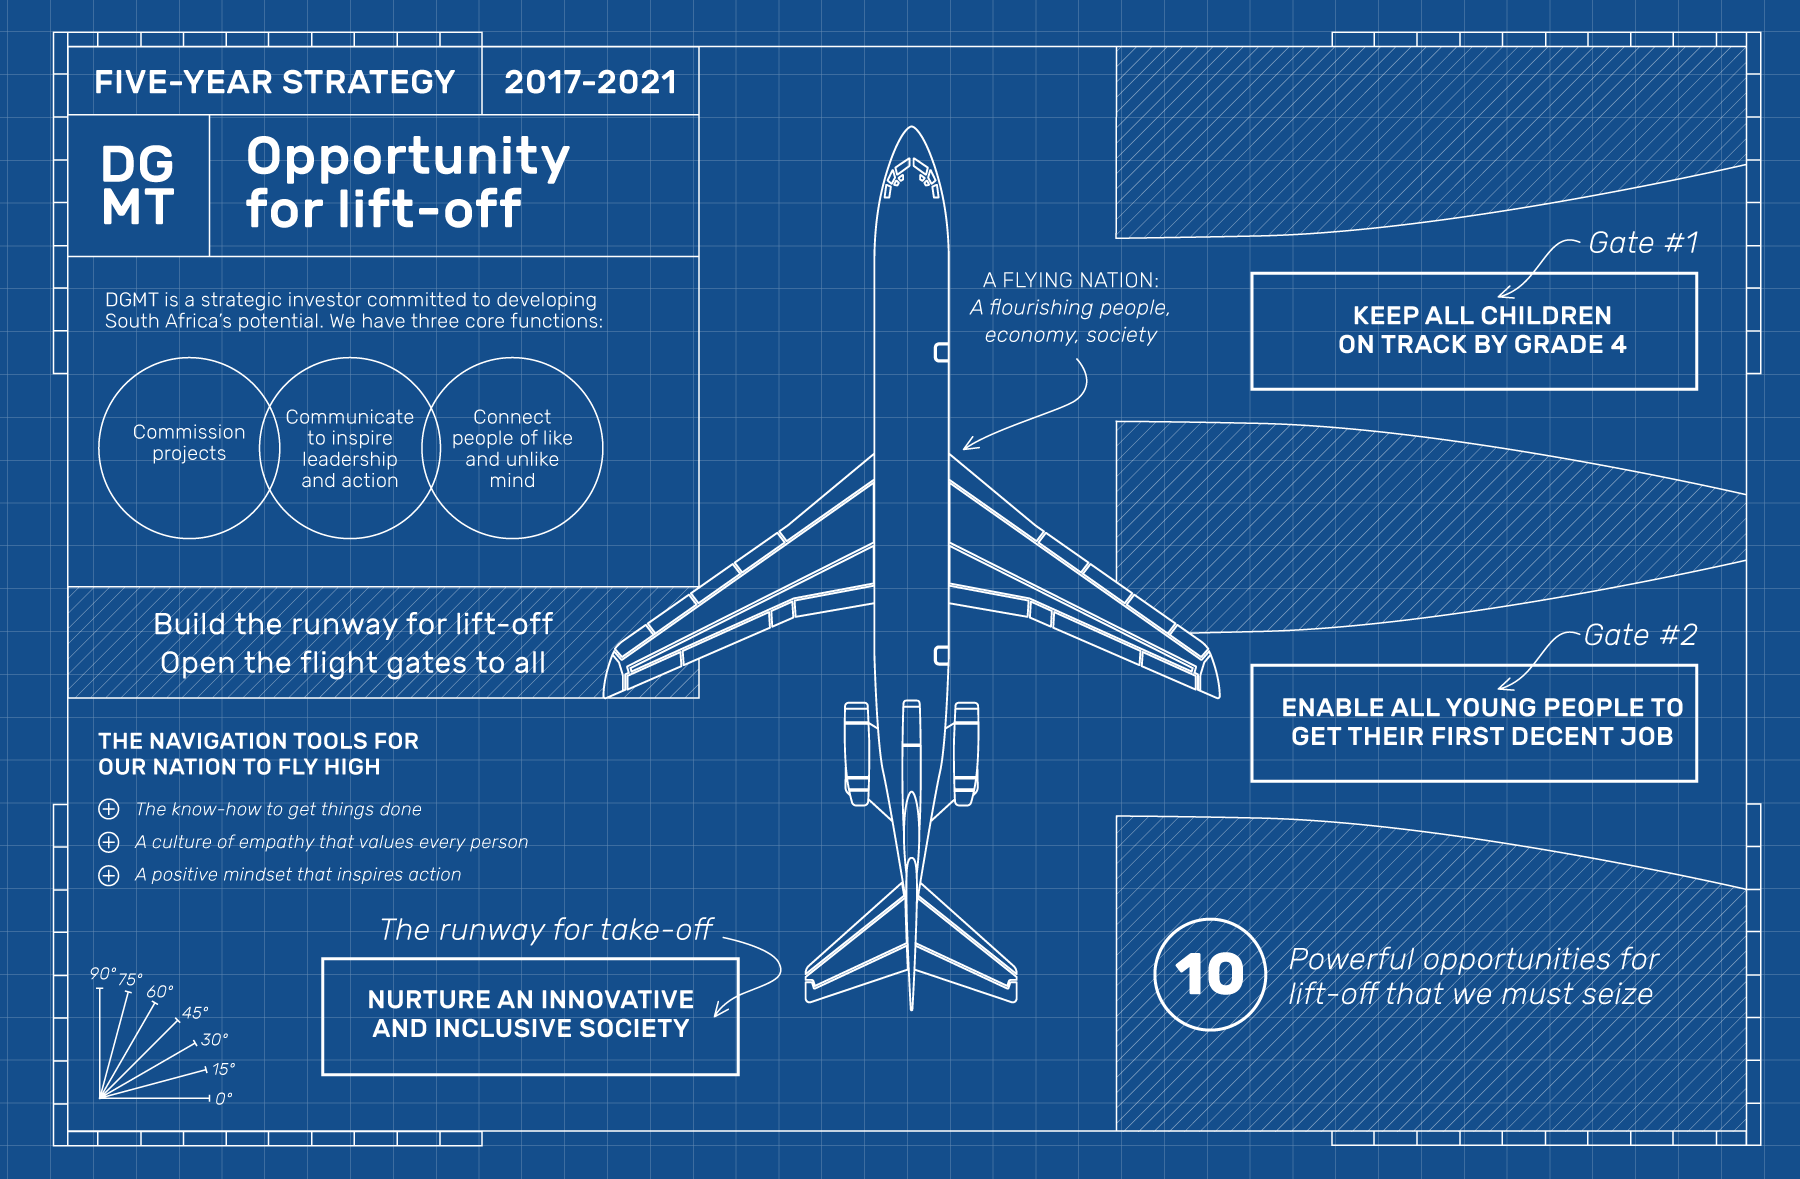 Opportunity for lift-off